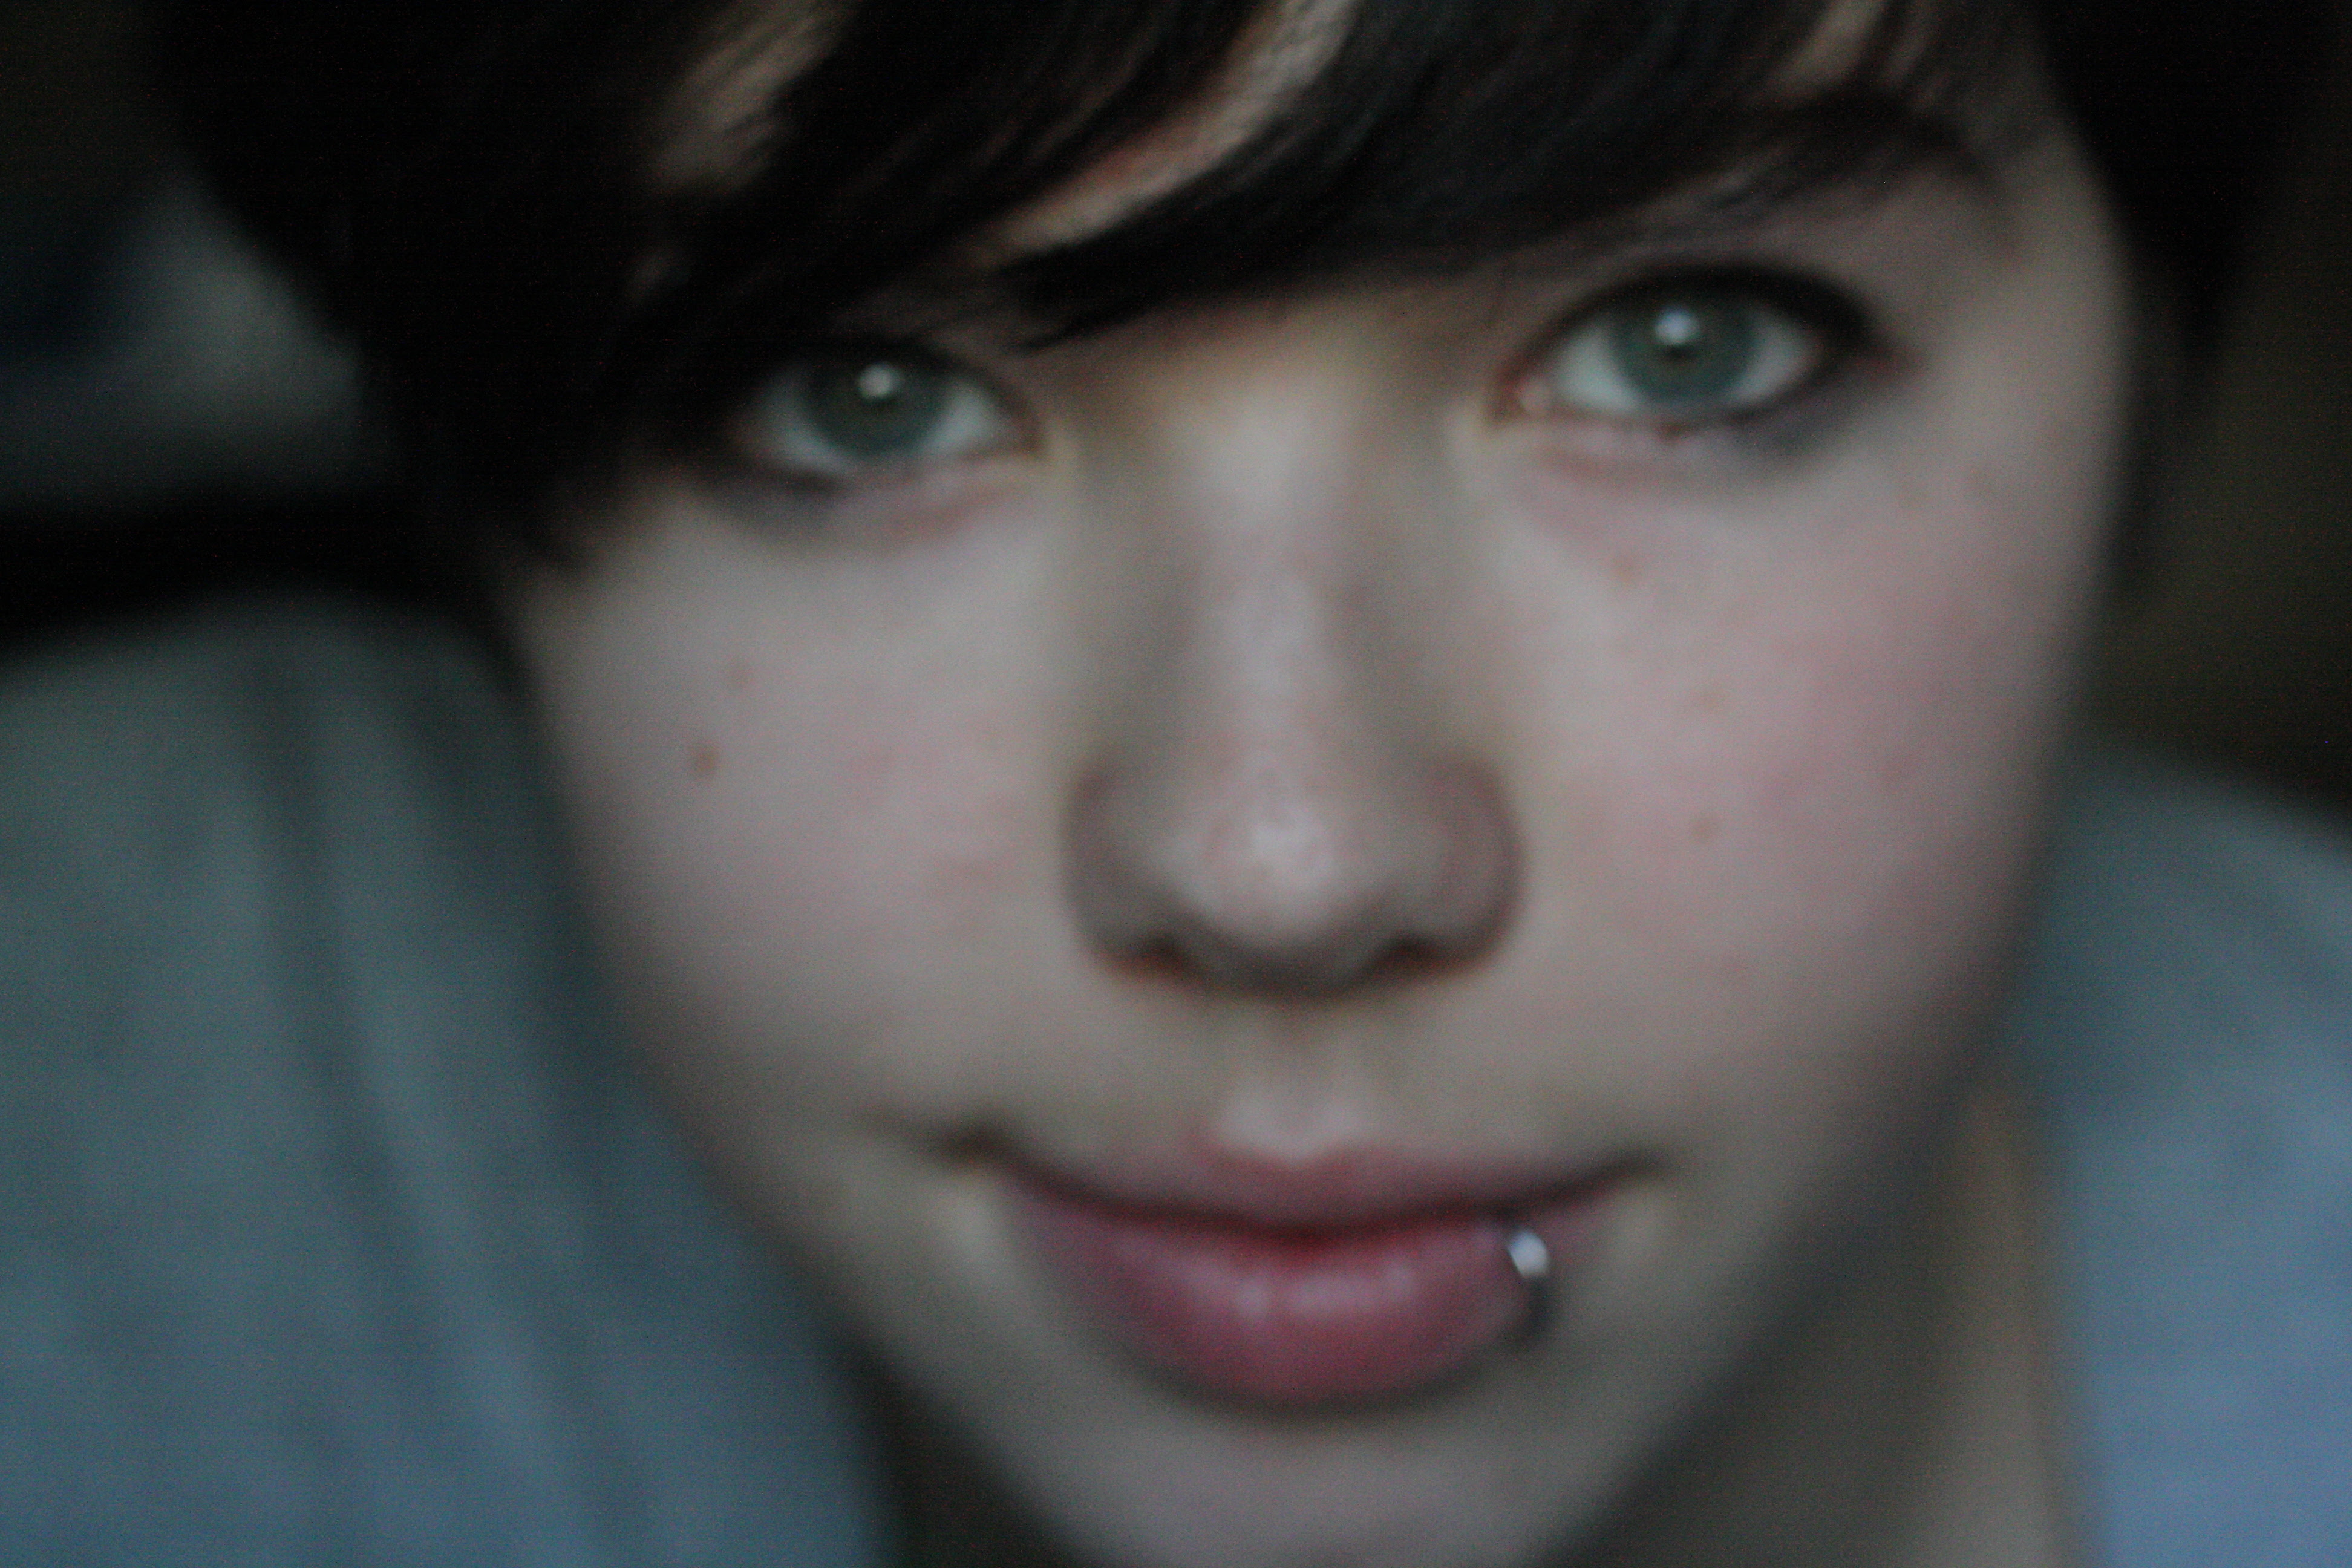 finally getting back to self portraits...this one's blurry but...I like it. :]